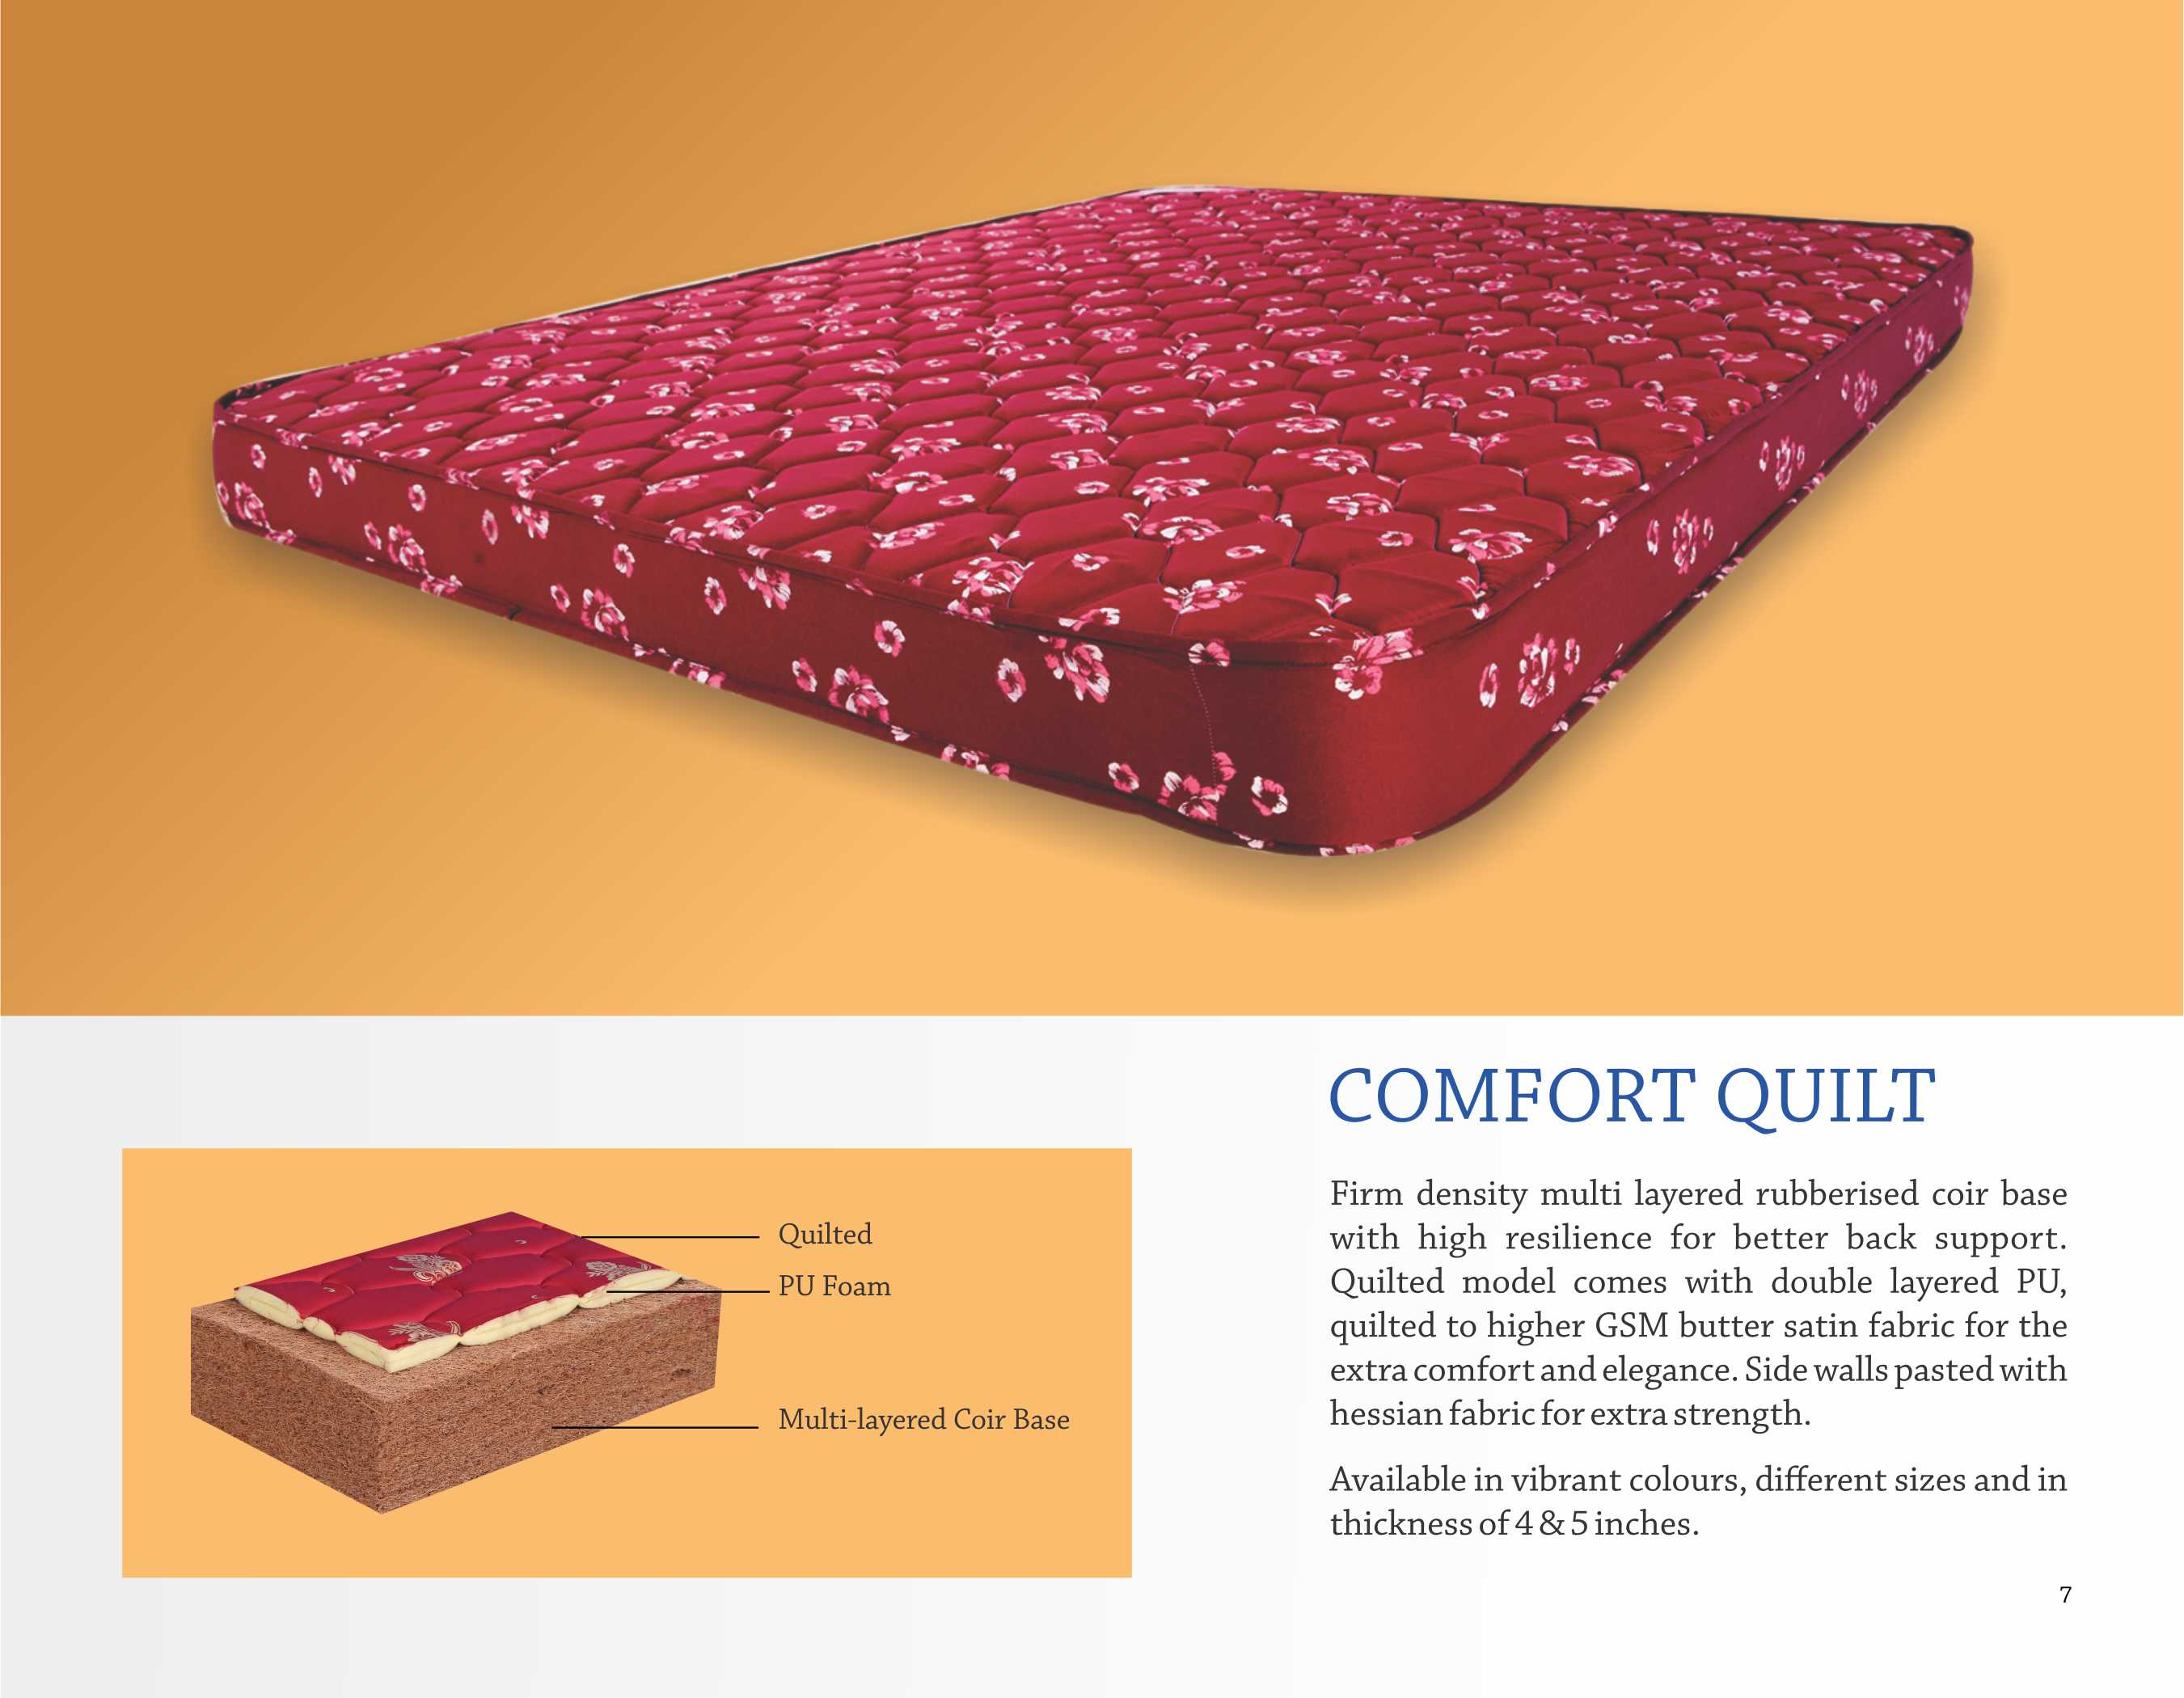 Comfort Quilt Mattress Maroon manufacturer and Exporter In Coimbatore  Comfort Quilt Mattress Maroon manufacturer and Exporter firm density multi layered rubberized coir base with high resilience for better back support. Quilted model comes with double layered PU, quilted to higher GSM butter satin fabric for the extra comfort and elegance. Side walls pasted with Hessian fabric for extra strength.  Available in maroon color, different sizes and in thickness of 4 & 5 inches.  Comfort Quilt Mattress Maroon manufacturer and Exporter In Coimbatore Comfort Quilt Mattress Maroon manufacturer and Exporter In Chennai Comfort Quilt Mattress Maroon manufacturer and Exporter In Bangalore Comfort Quilt Mattress Maroon manufacturer and Exporter In Bangaluru